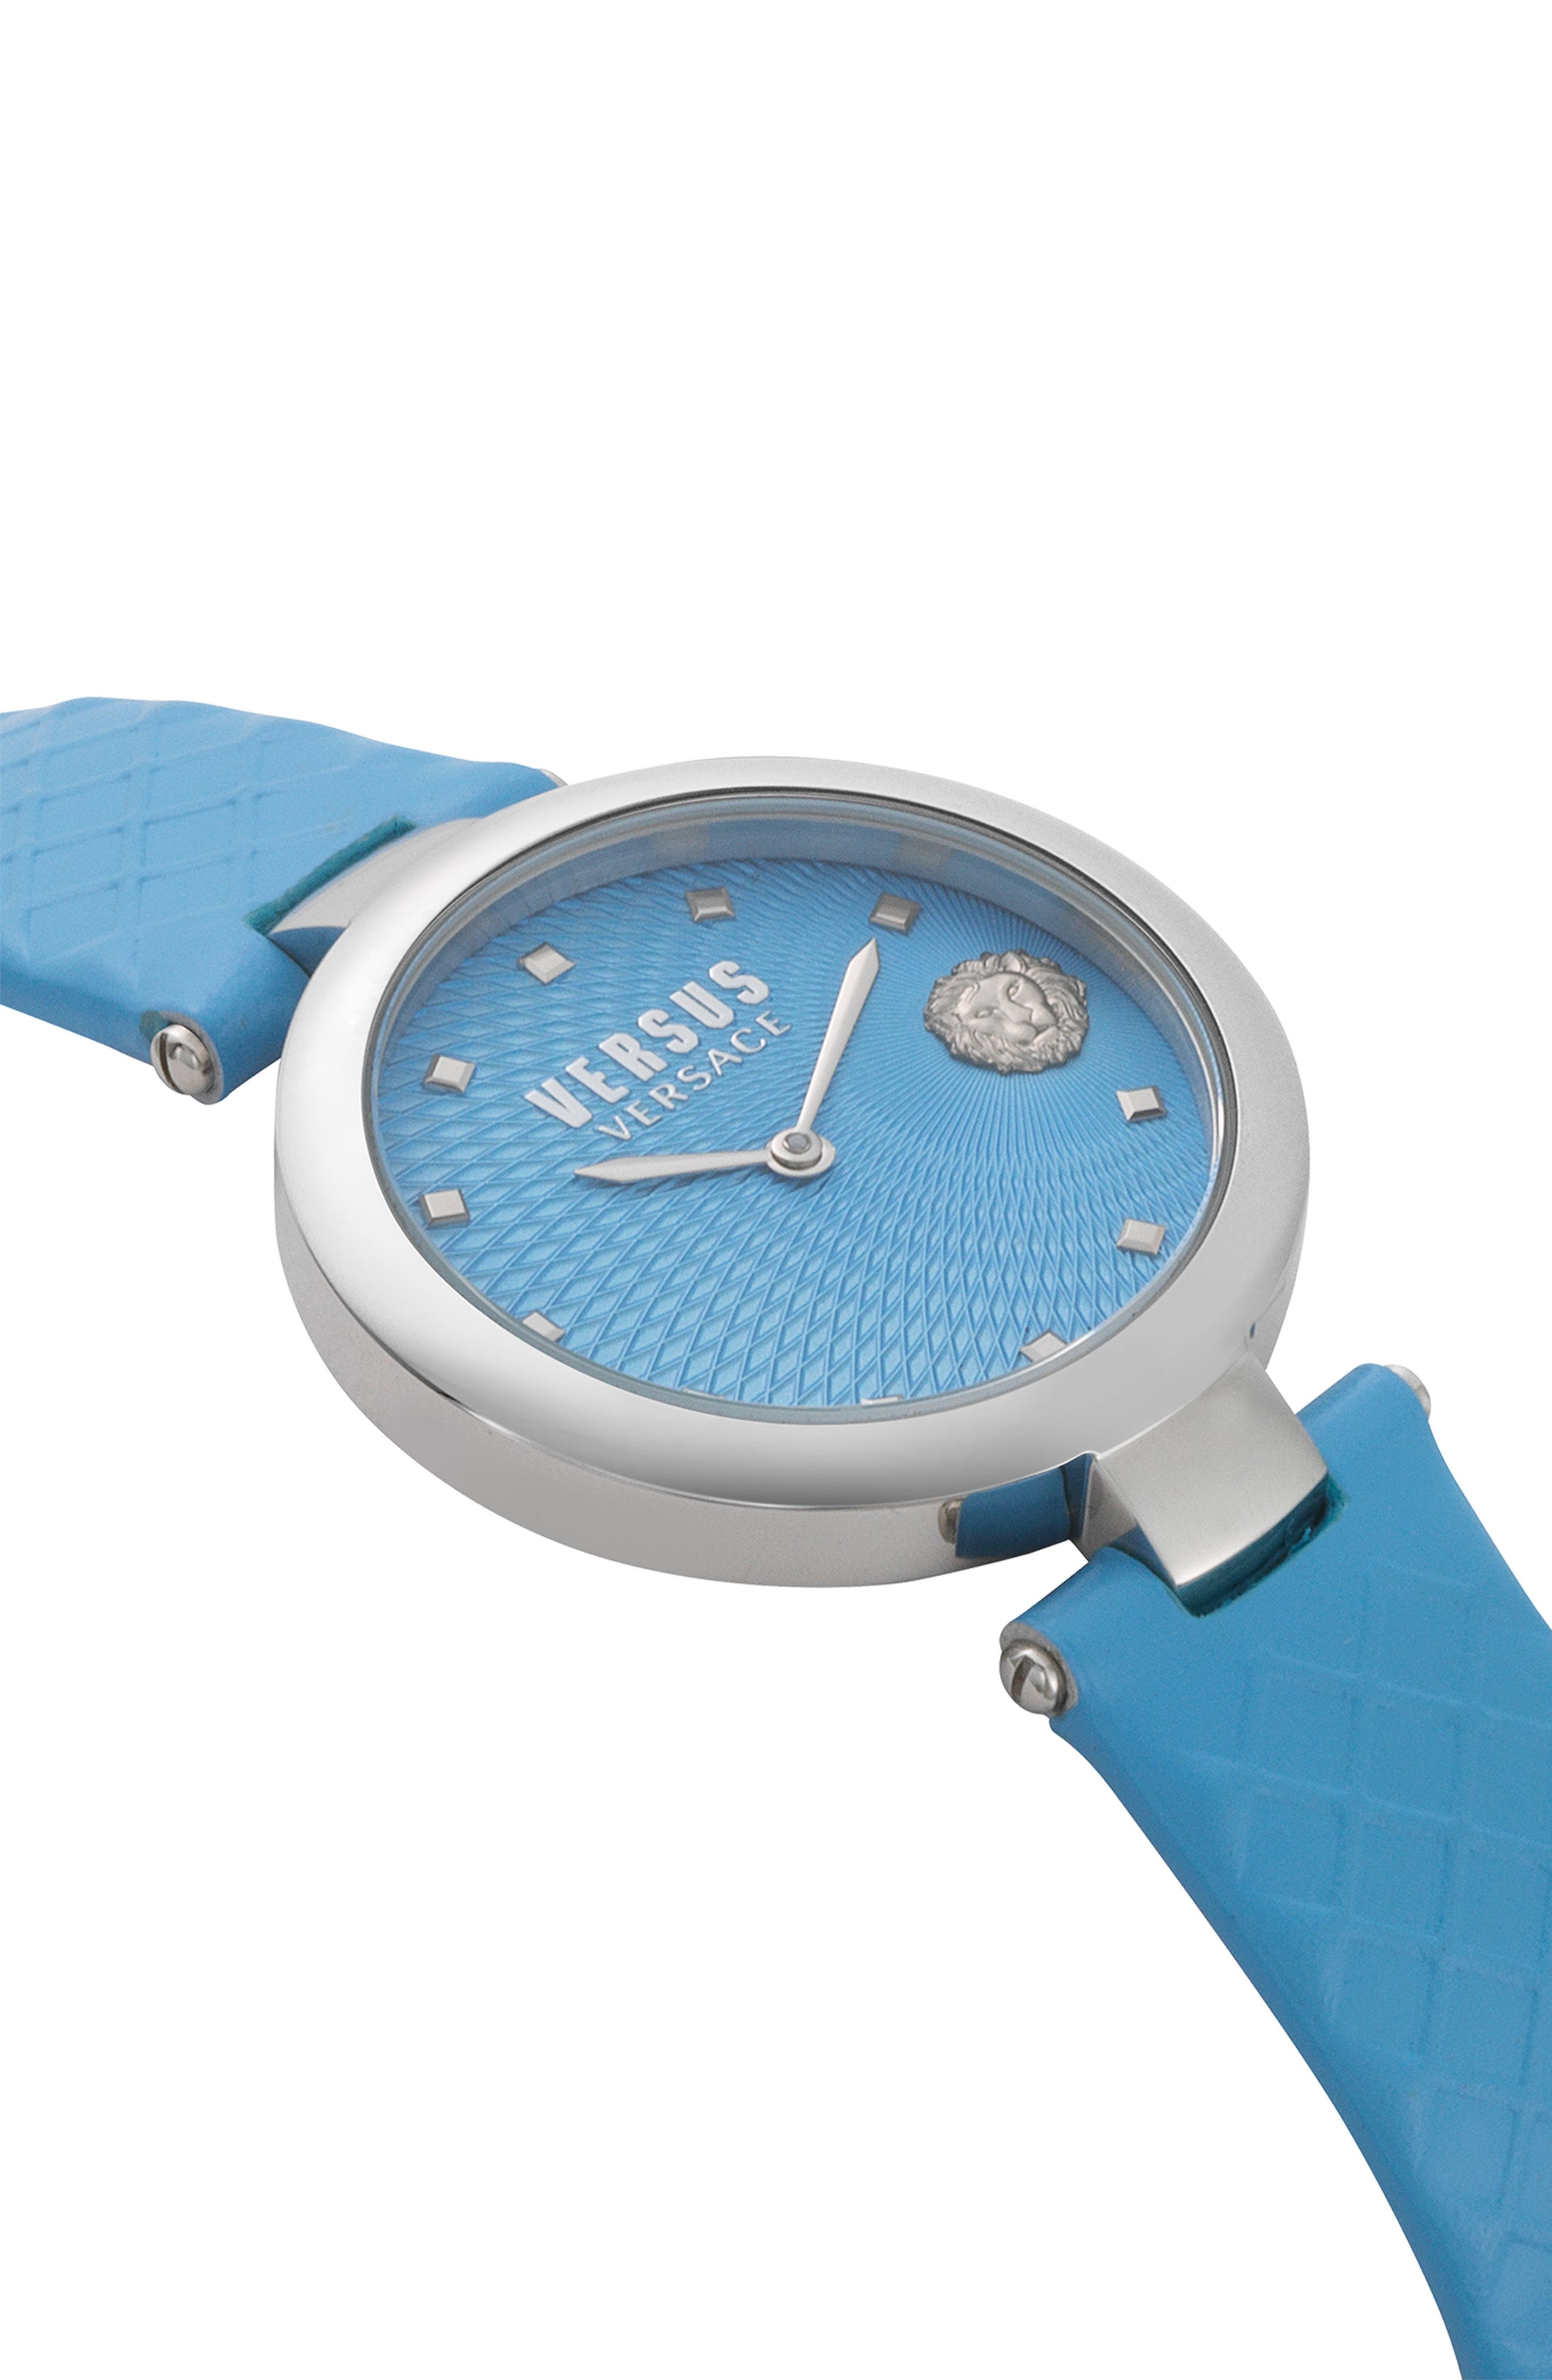 VERSUS VERSACE, Buffle Bay Leather Strap Watch, 36mm, Alternate thumbnail 3, color, BLUE/ SILVER